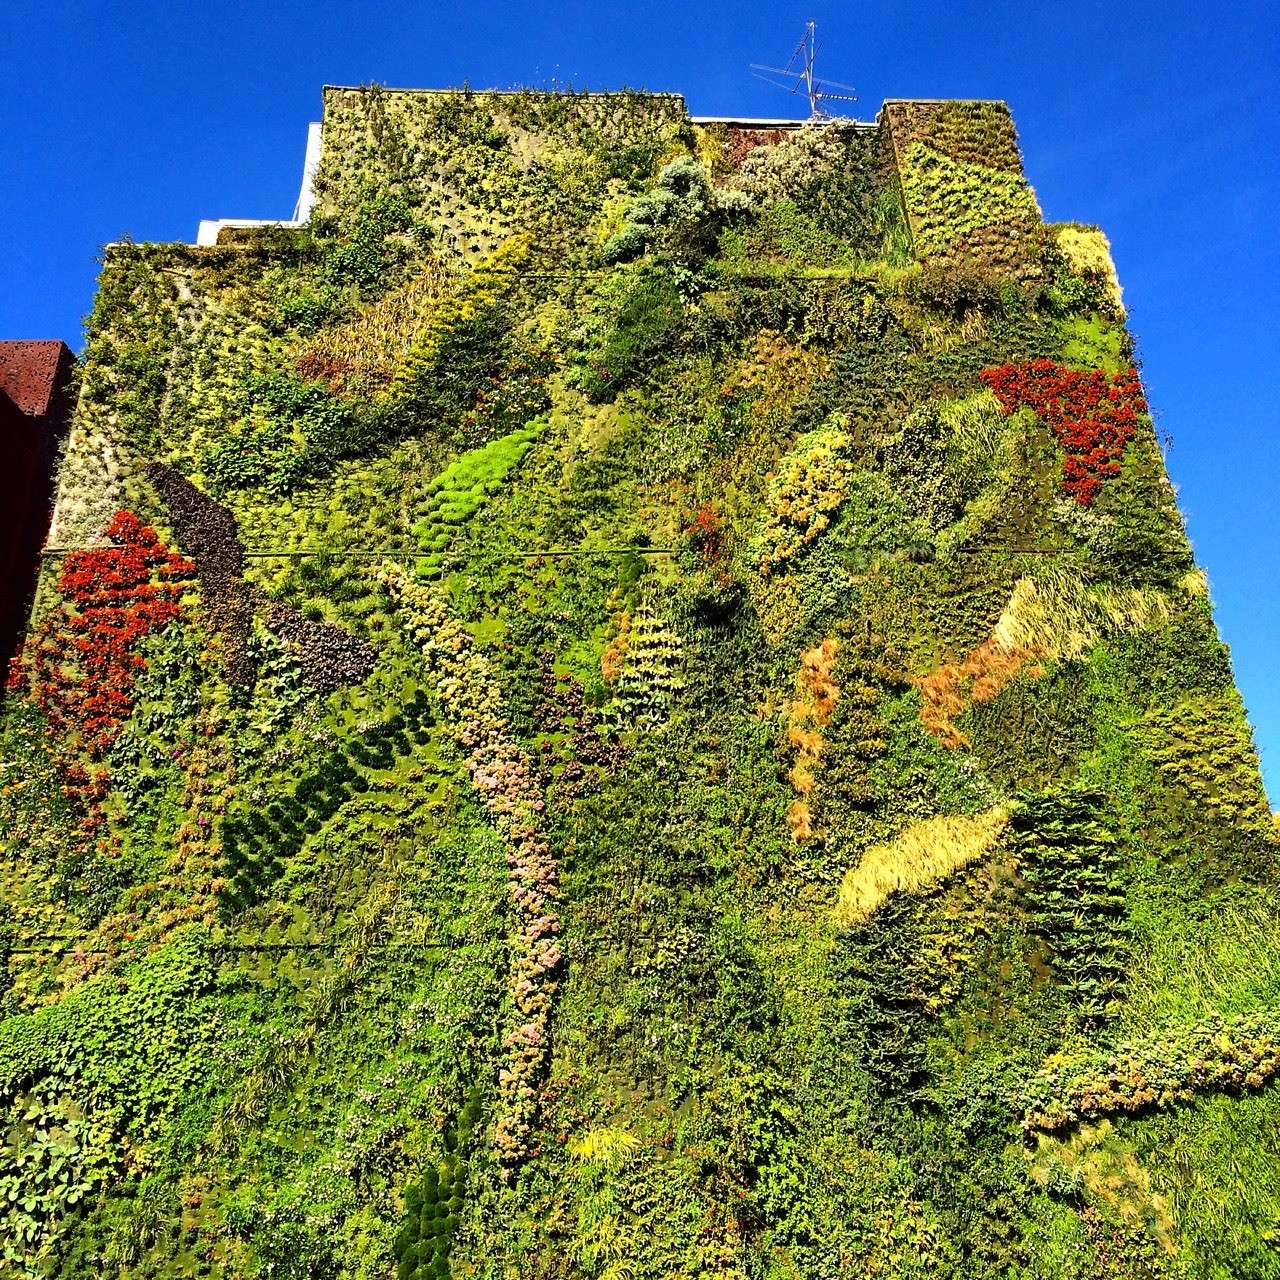 Vertical garden Caixa Forum